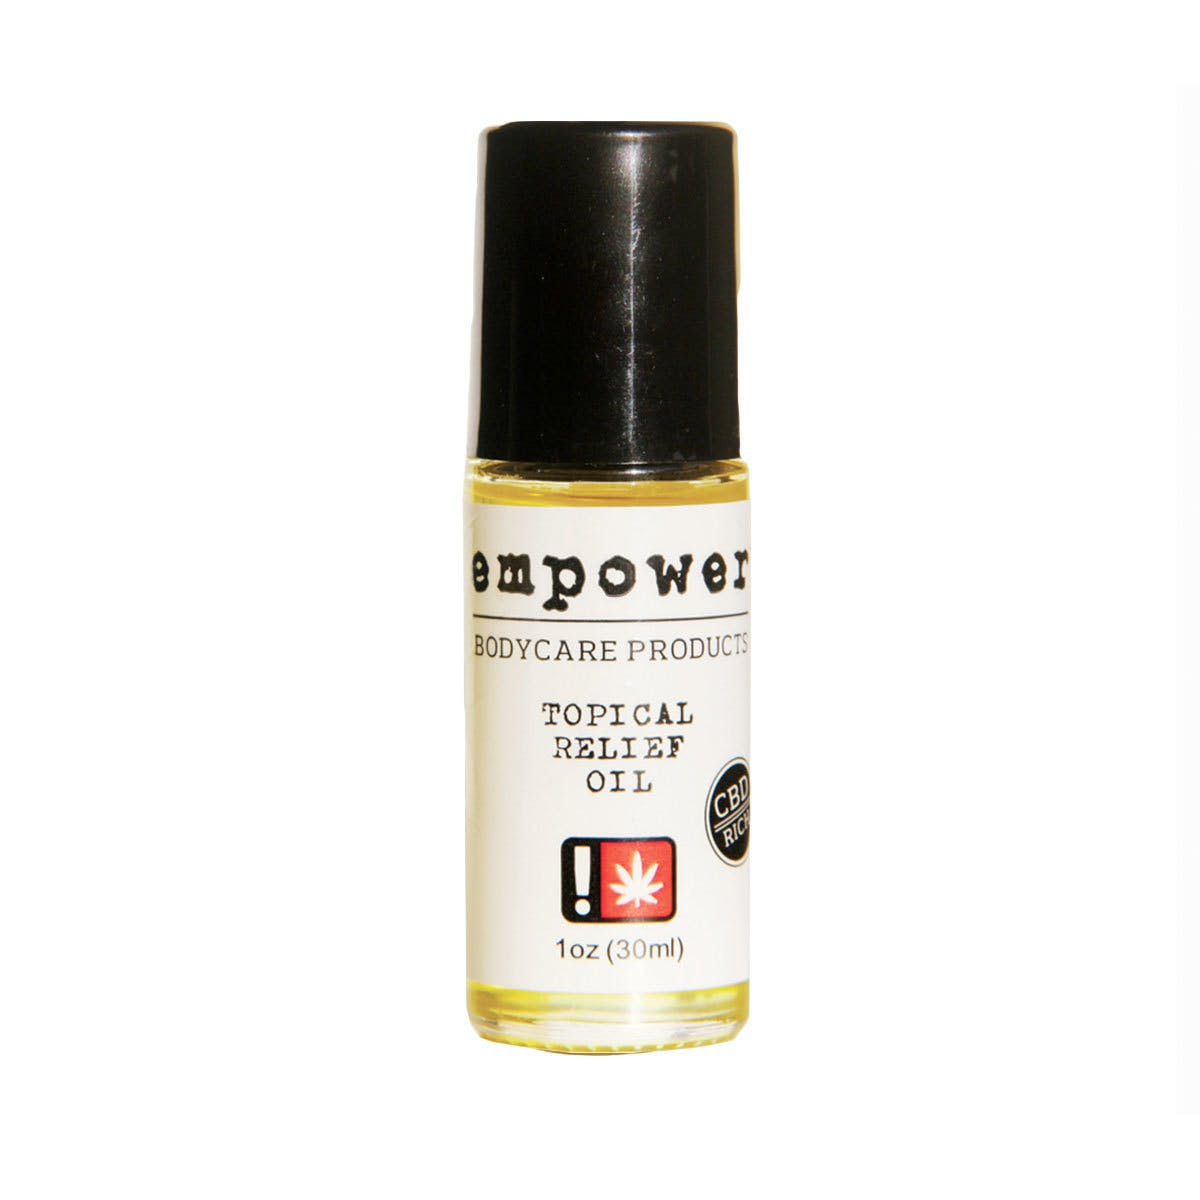 marijuana-dispensaries-kush-dispensary-of-oregon-in-keizer-empowerar-topical-relief-oil-white-label-30ml